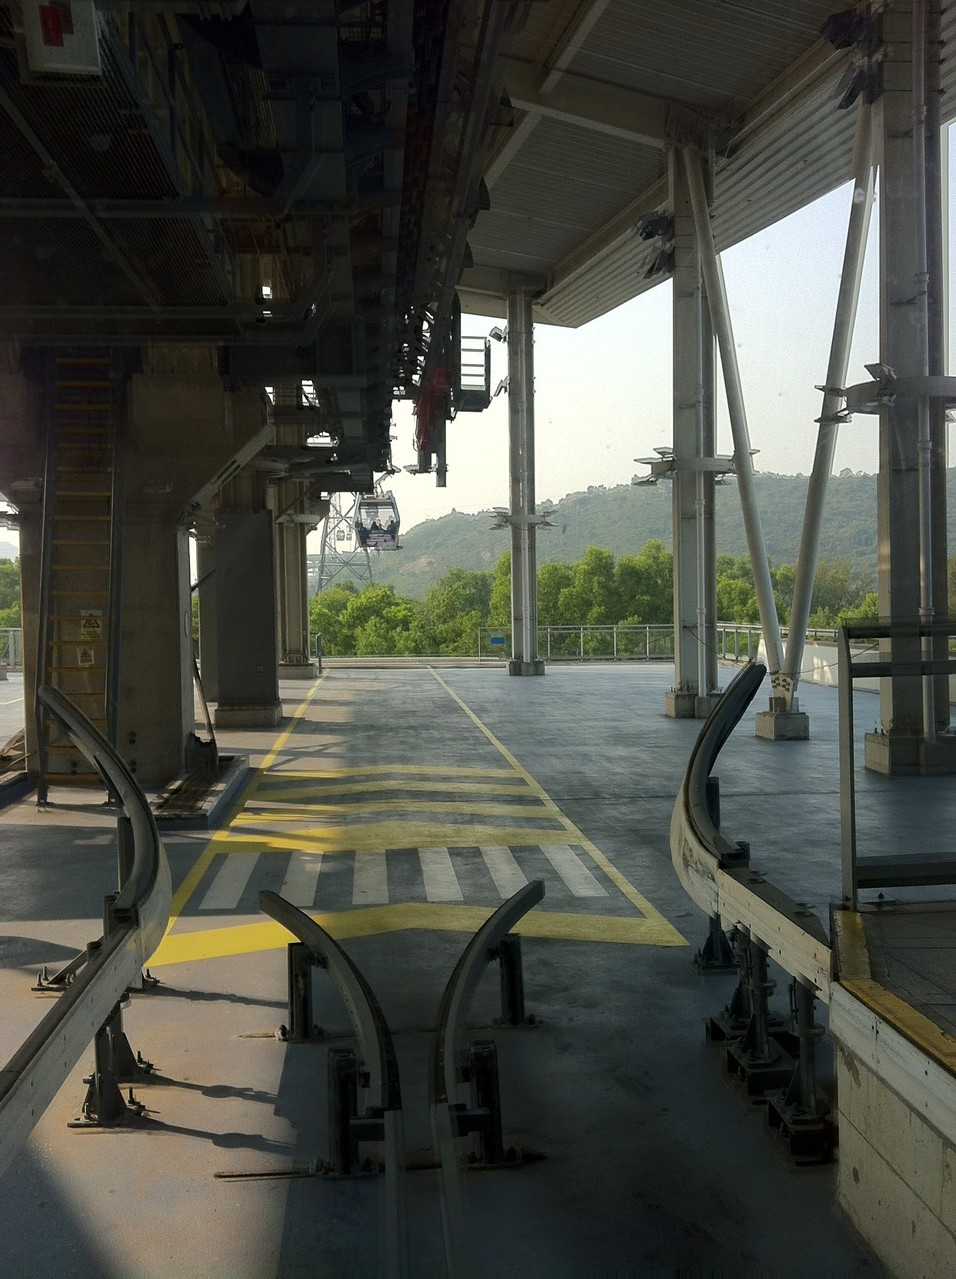 All aboard the cable car! — at Ngong Ping Cable Car.